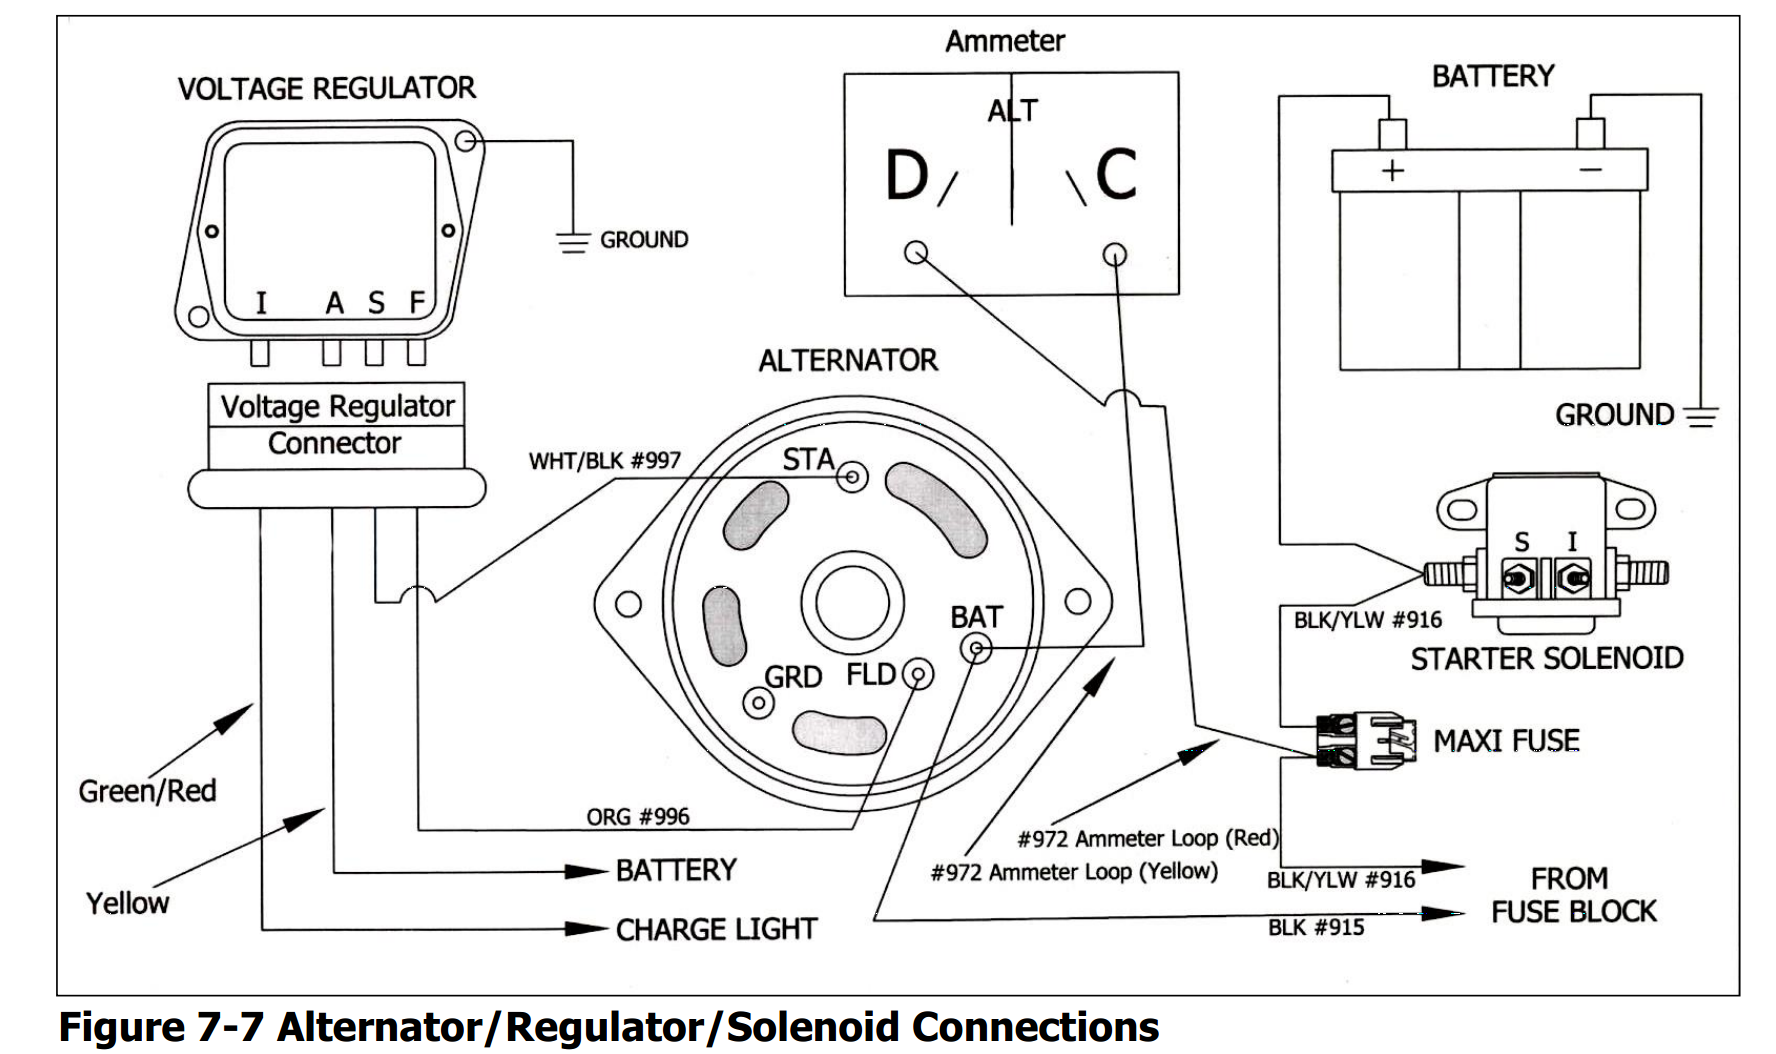 voltage regulator diagram | Voltage regulator, Alternator, Regulators | Vr600 Voltage Regulator Wiring Diagram |  | Pinterest